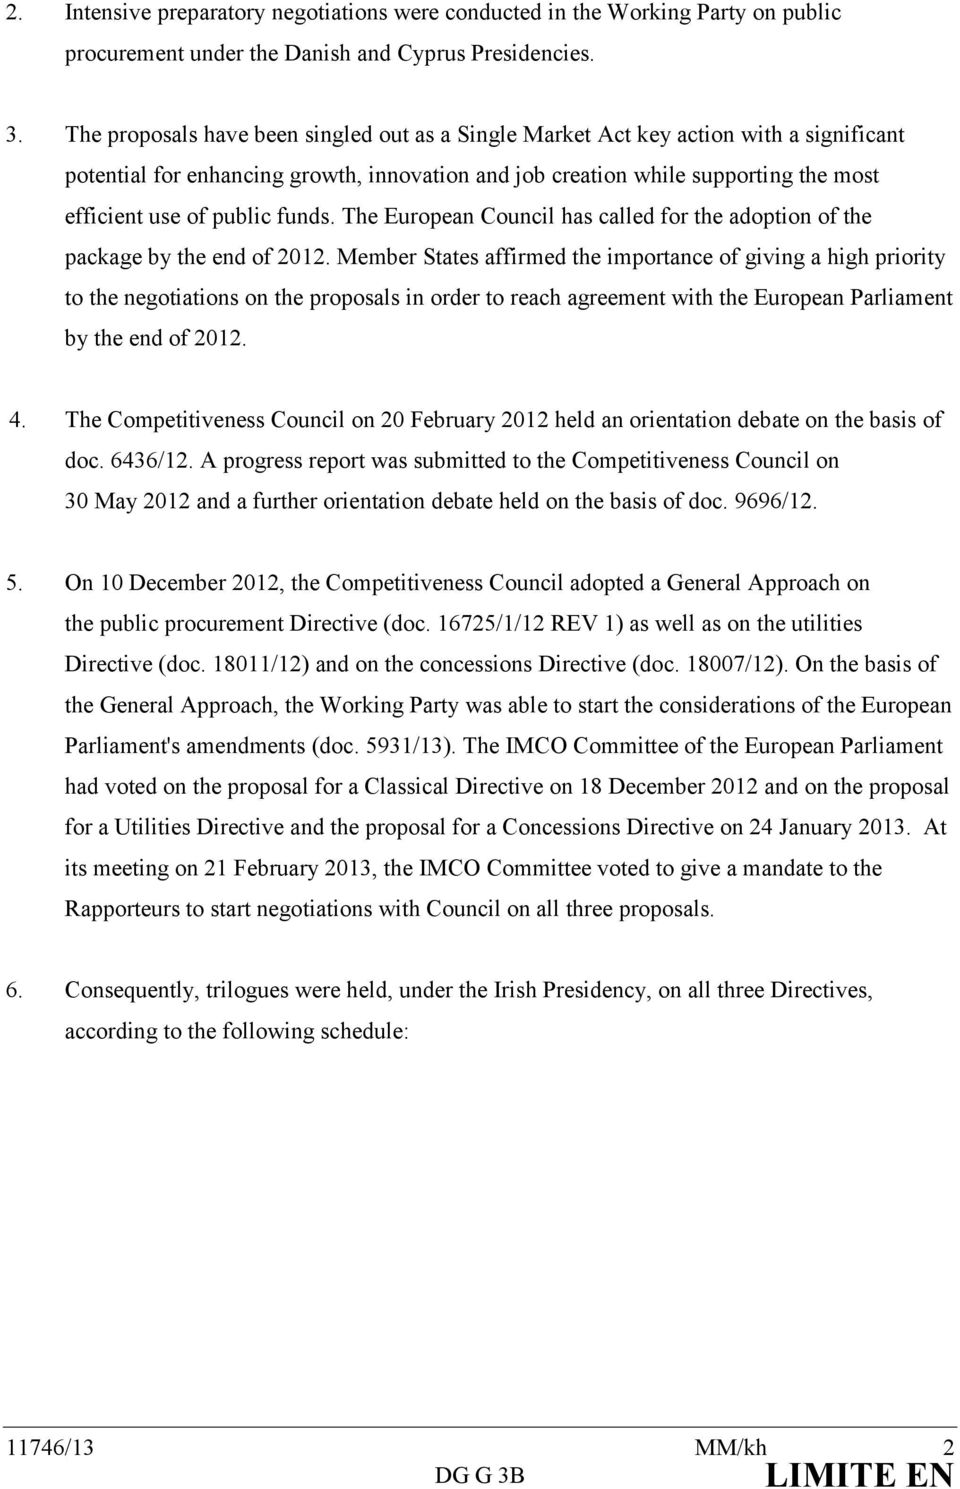 funds. The European Council has called for the adoption of the package by the end of 2012.